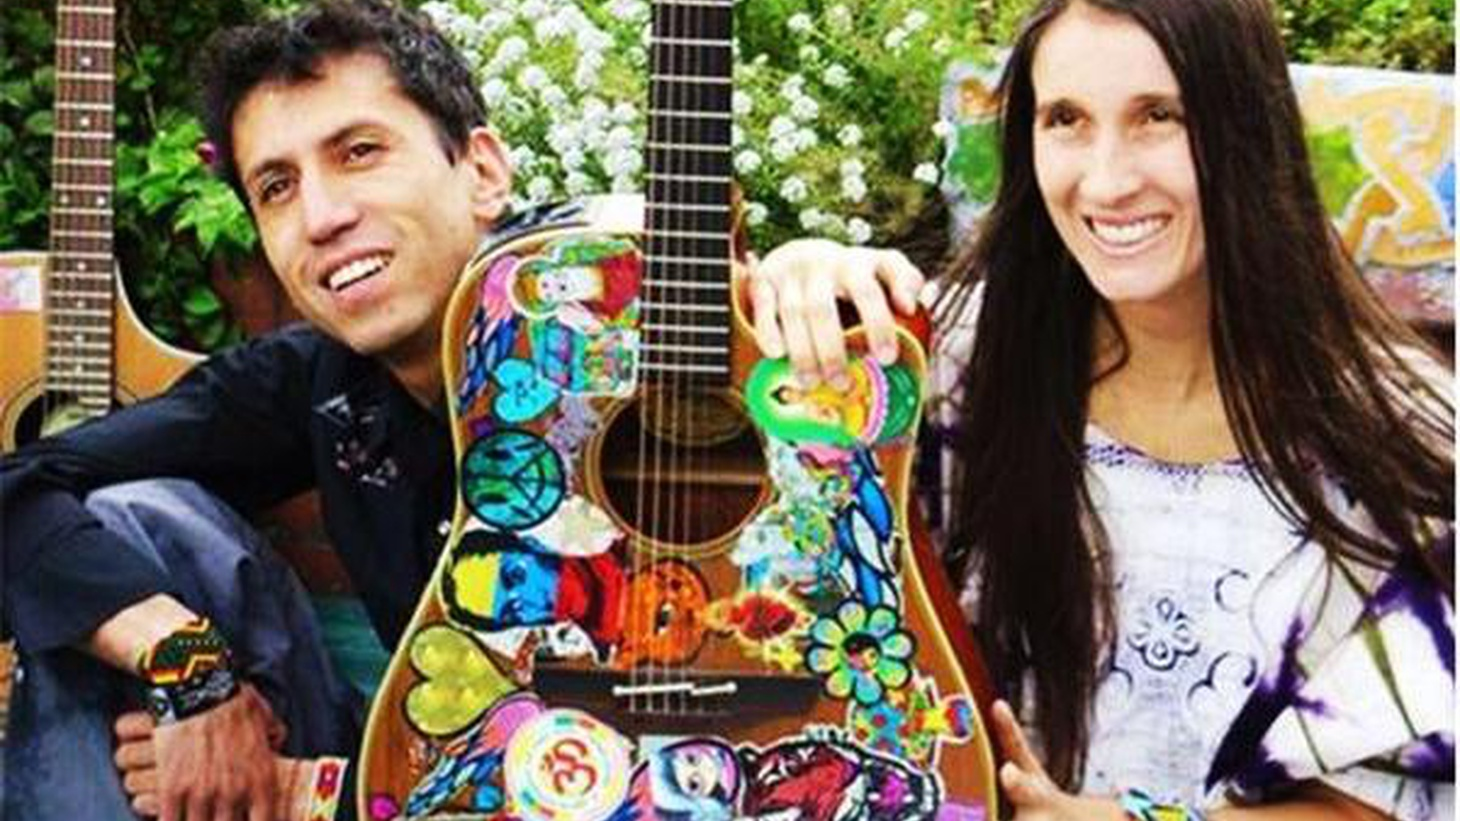 Colombian duo Aterciopelados return with a batch of new songs on Morning Becomes Eclectic at 11:15am.